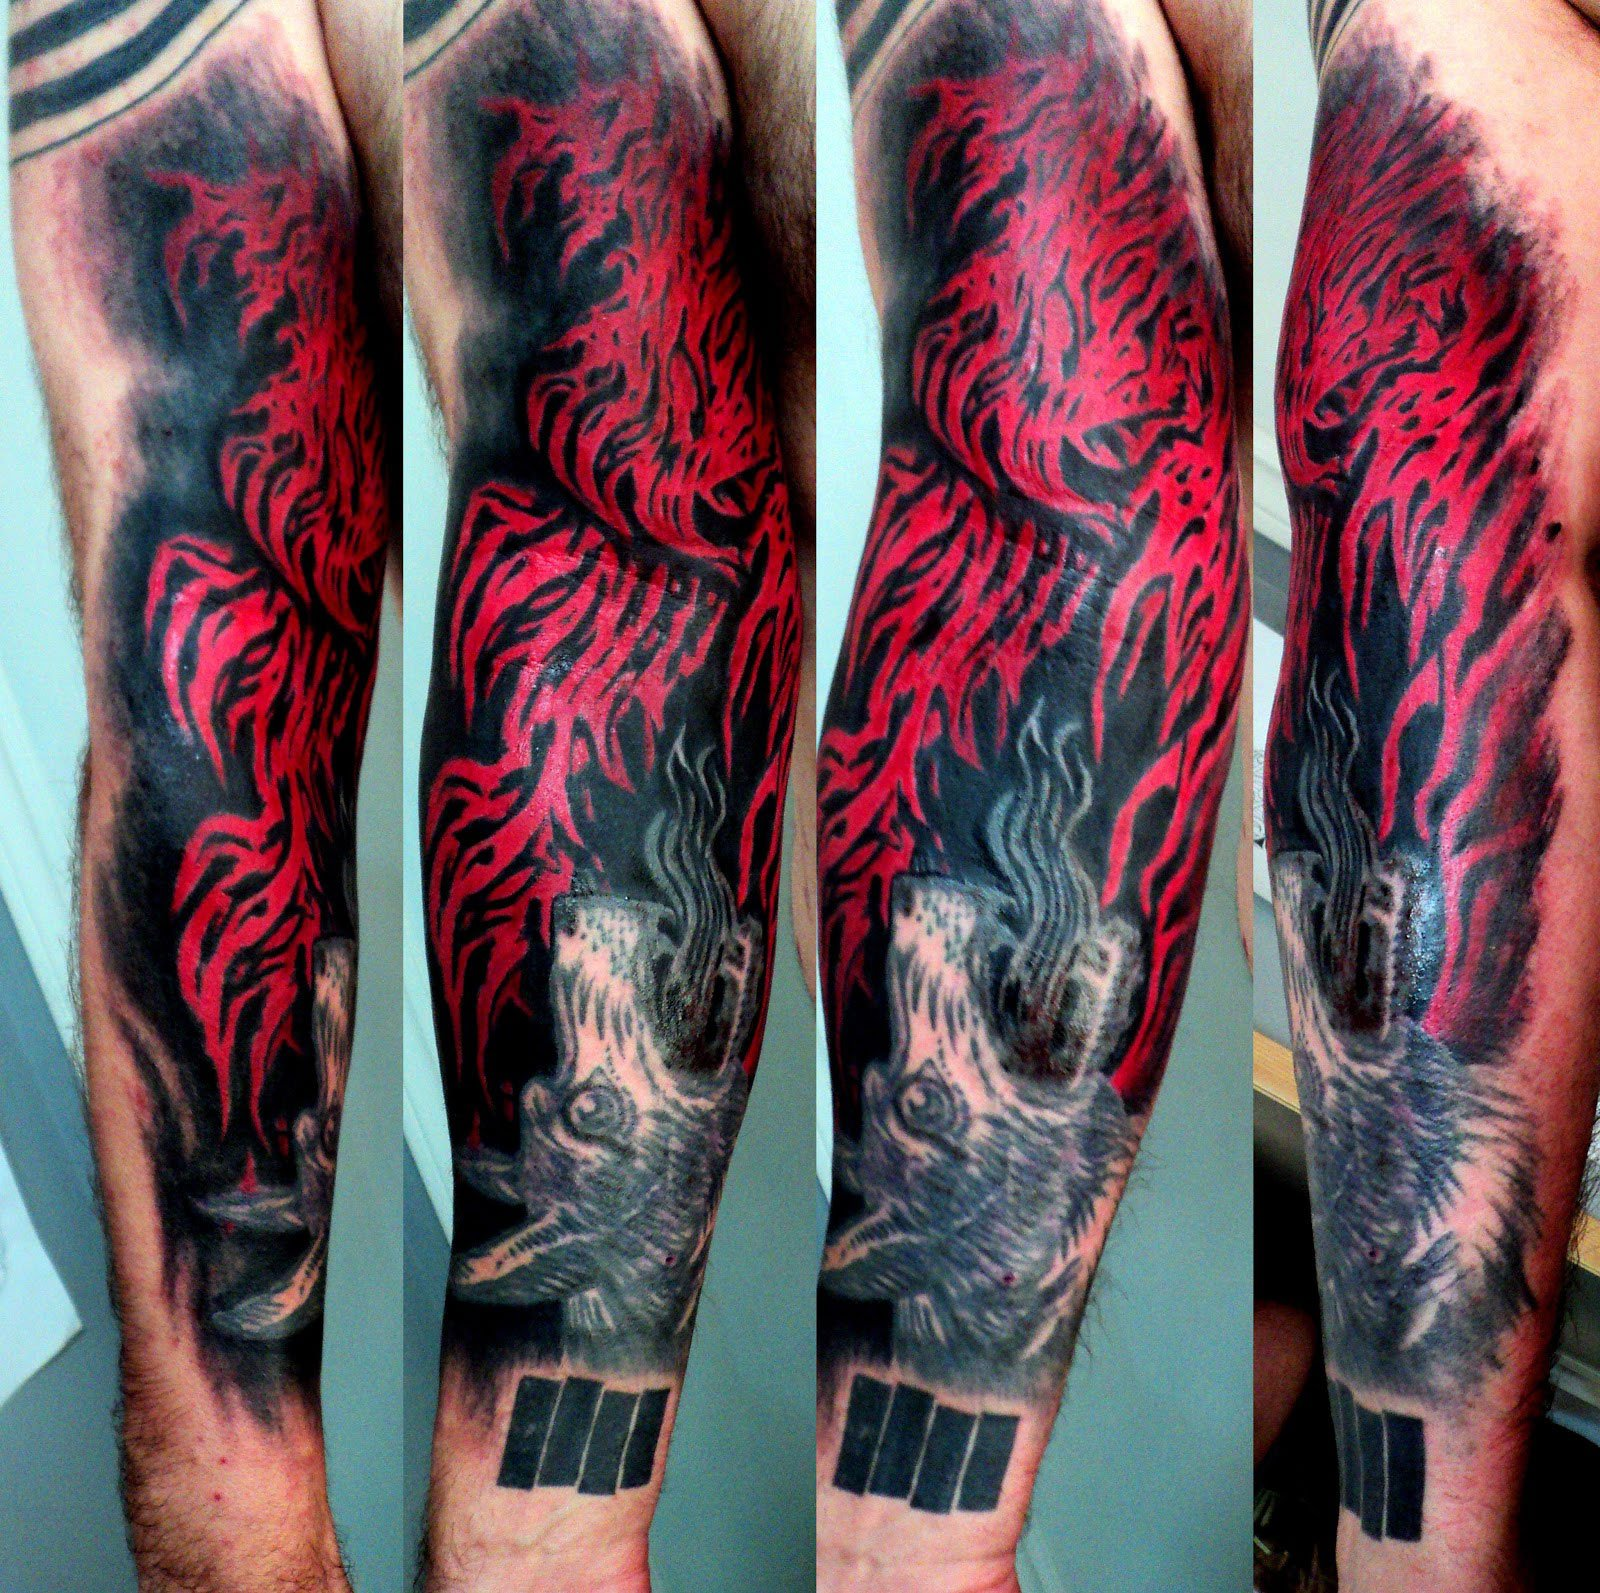 27 Flames Tattoos With Smoking Hot Meanings Tattoos Win